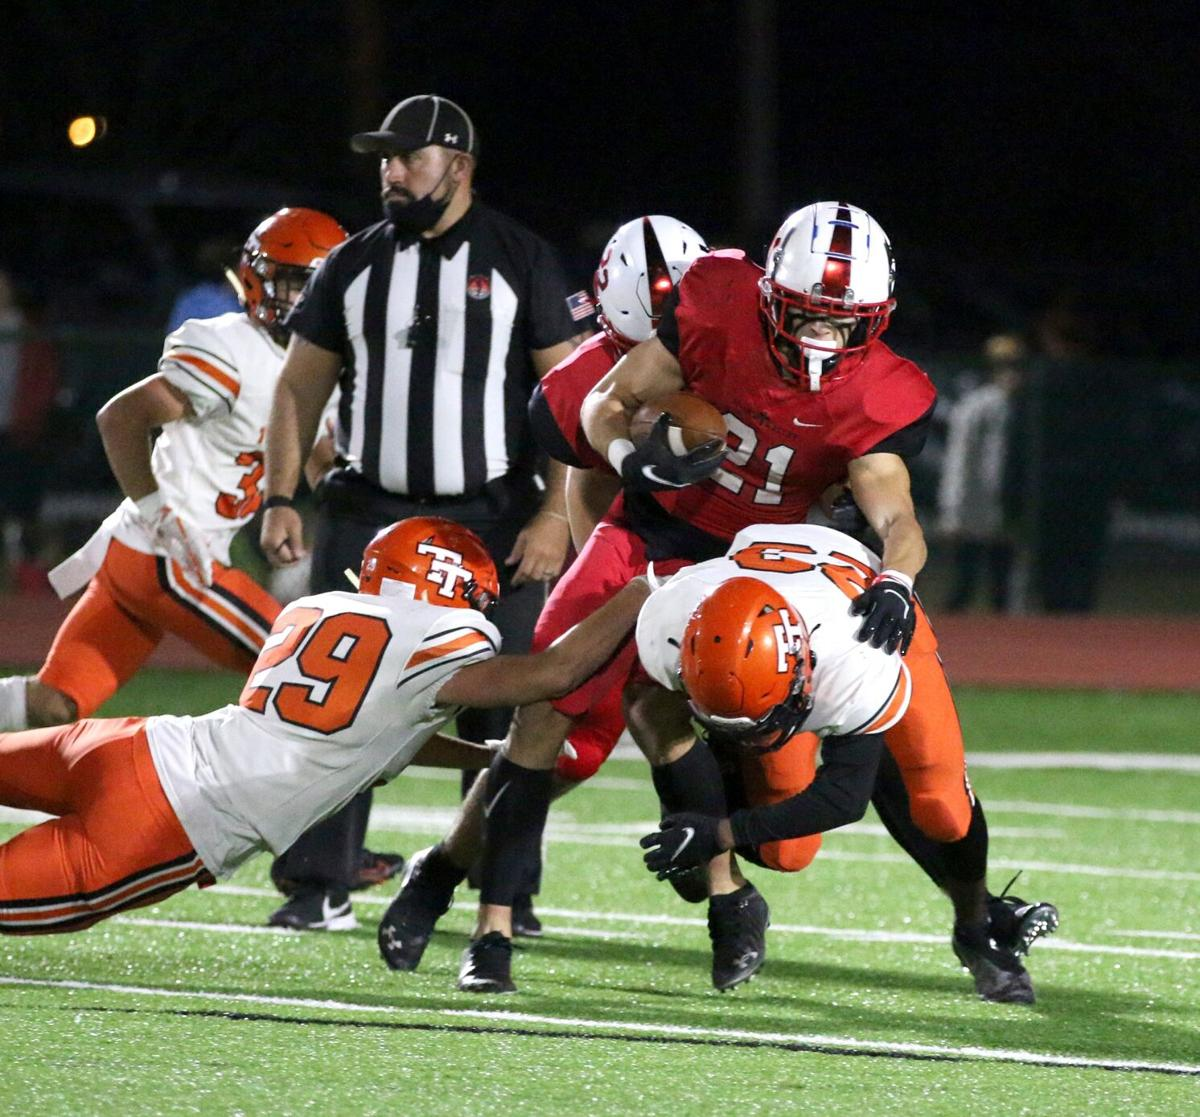 Overmatched: Bishop Kelley ends Tigers' season with 35-0 win